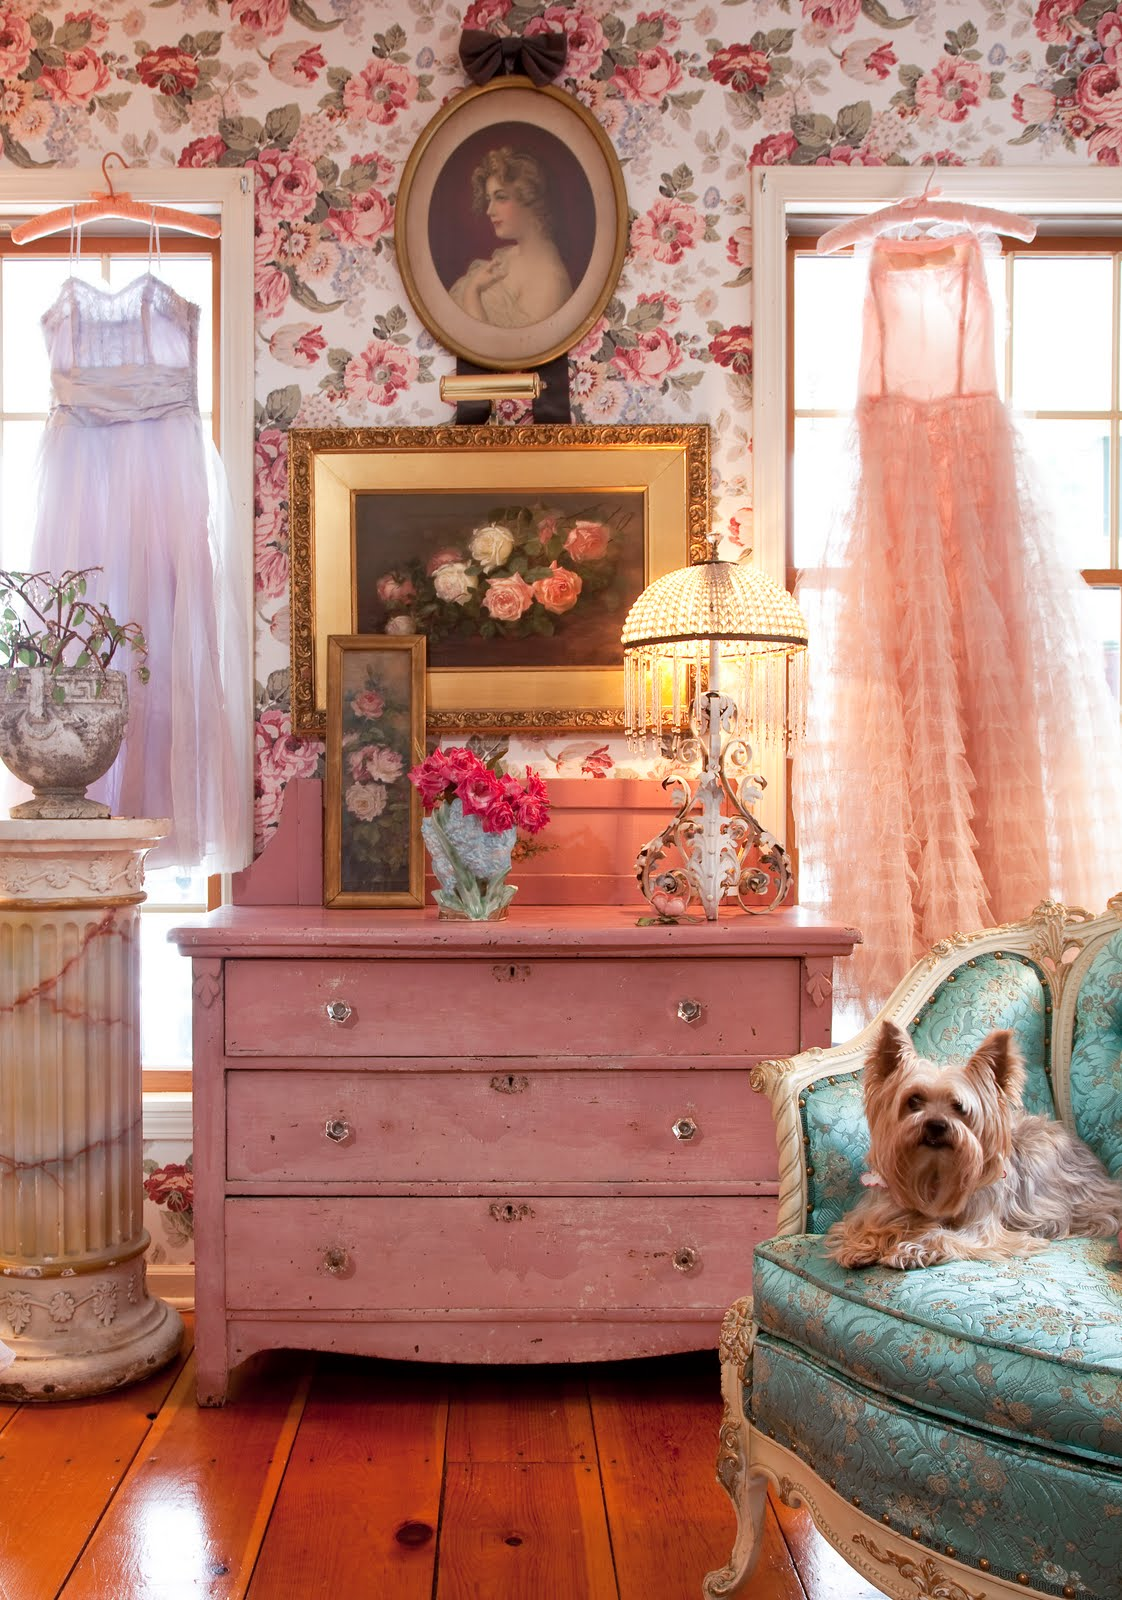 Blog Ideas How Retro Pin Up Girly Room Floral Wallpaper Pink Dresser 50s Style Inteior Decor Design Better Decorating